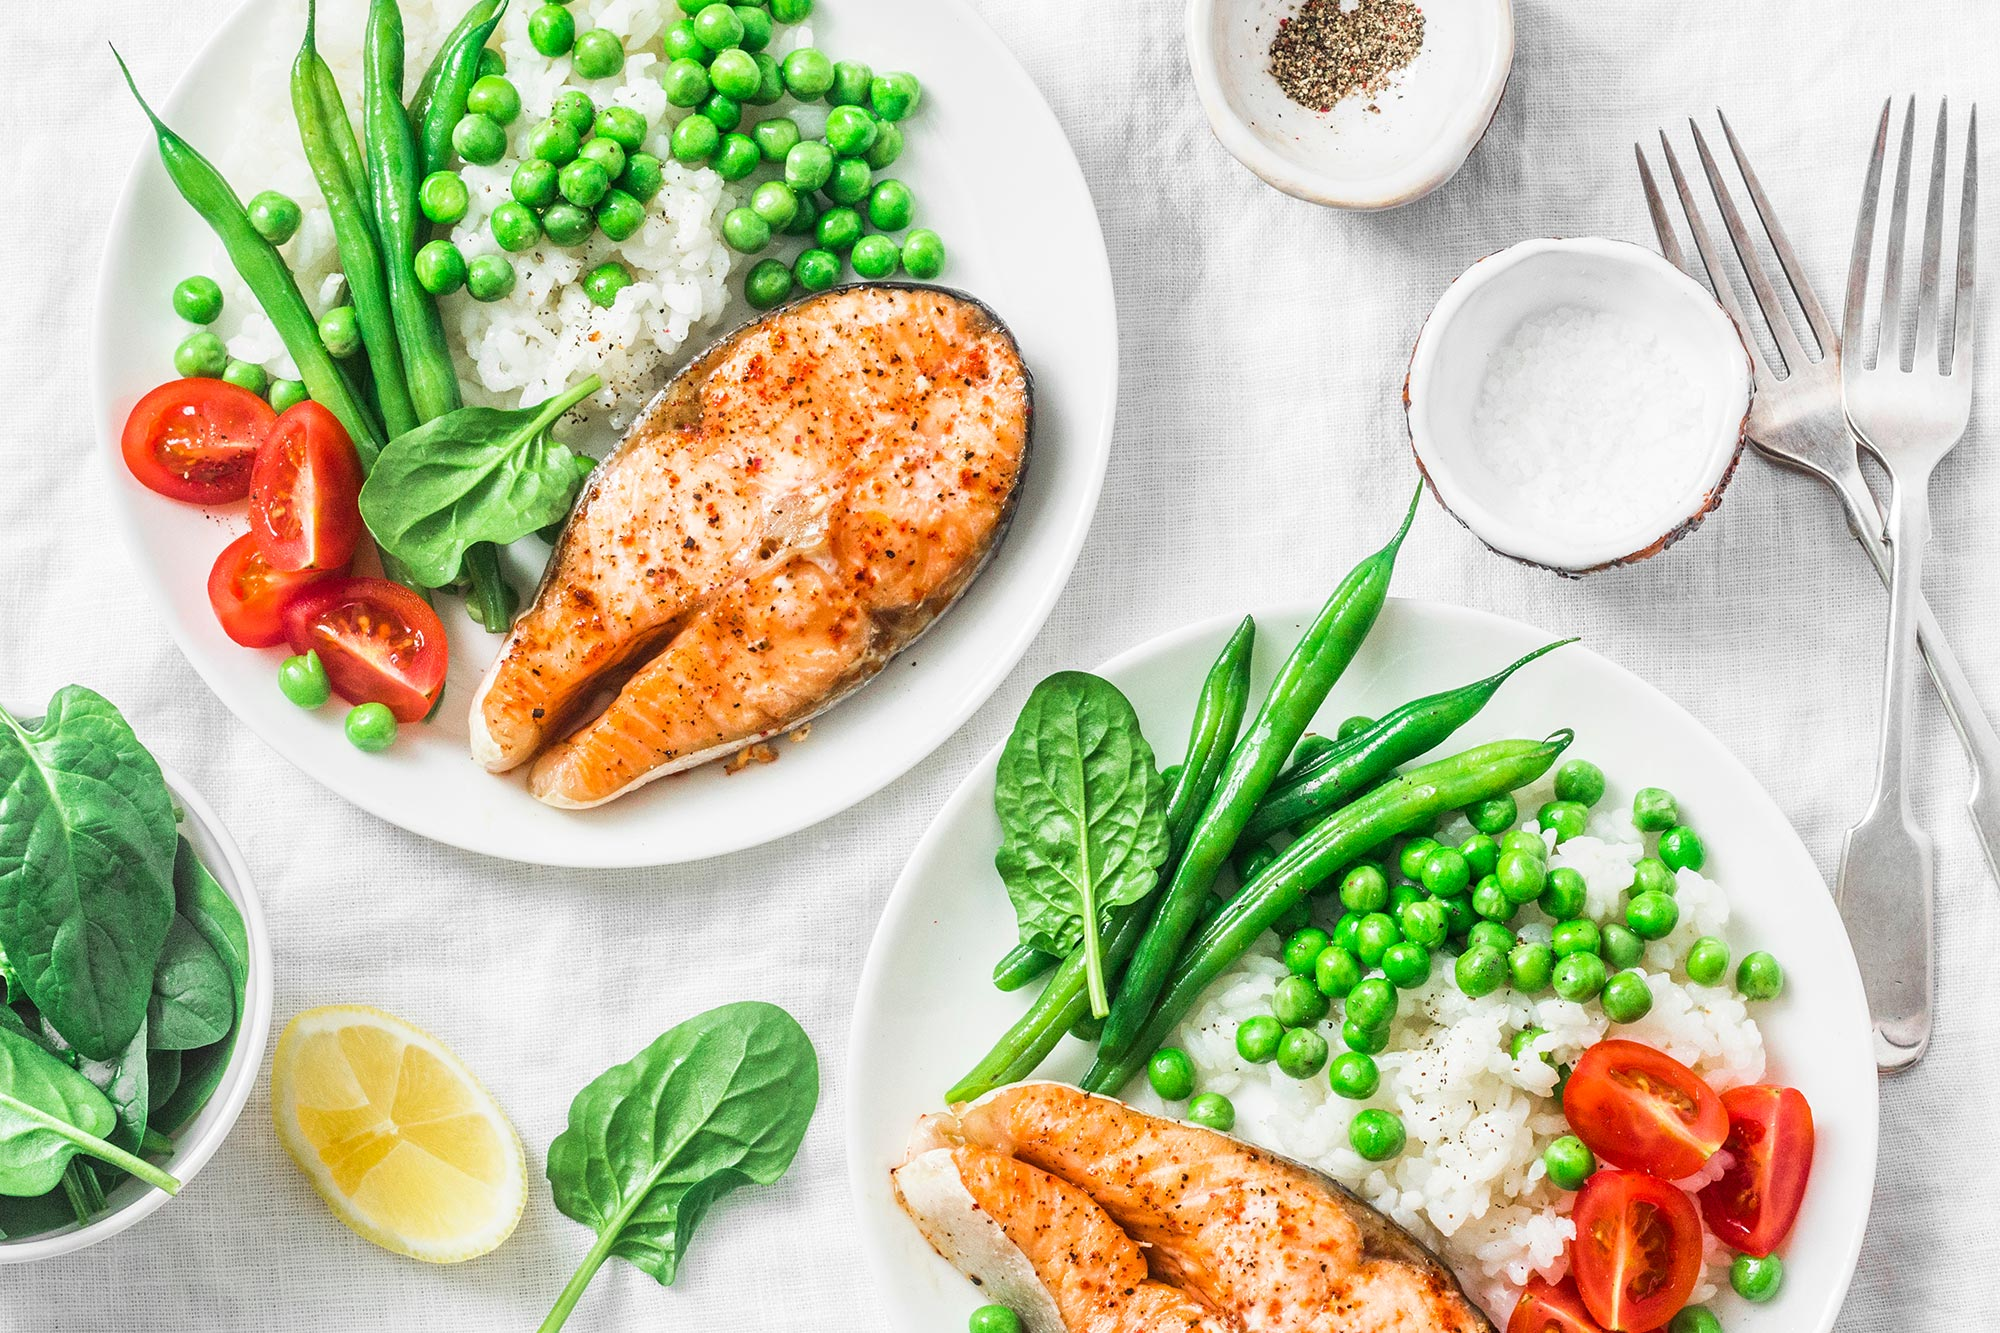 Mediterranean diet for one year promotes gut bacteria linked to 'healthy aging'